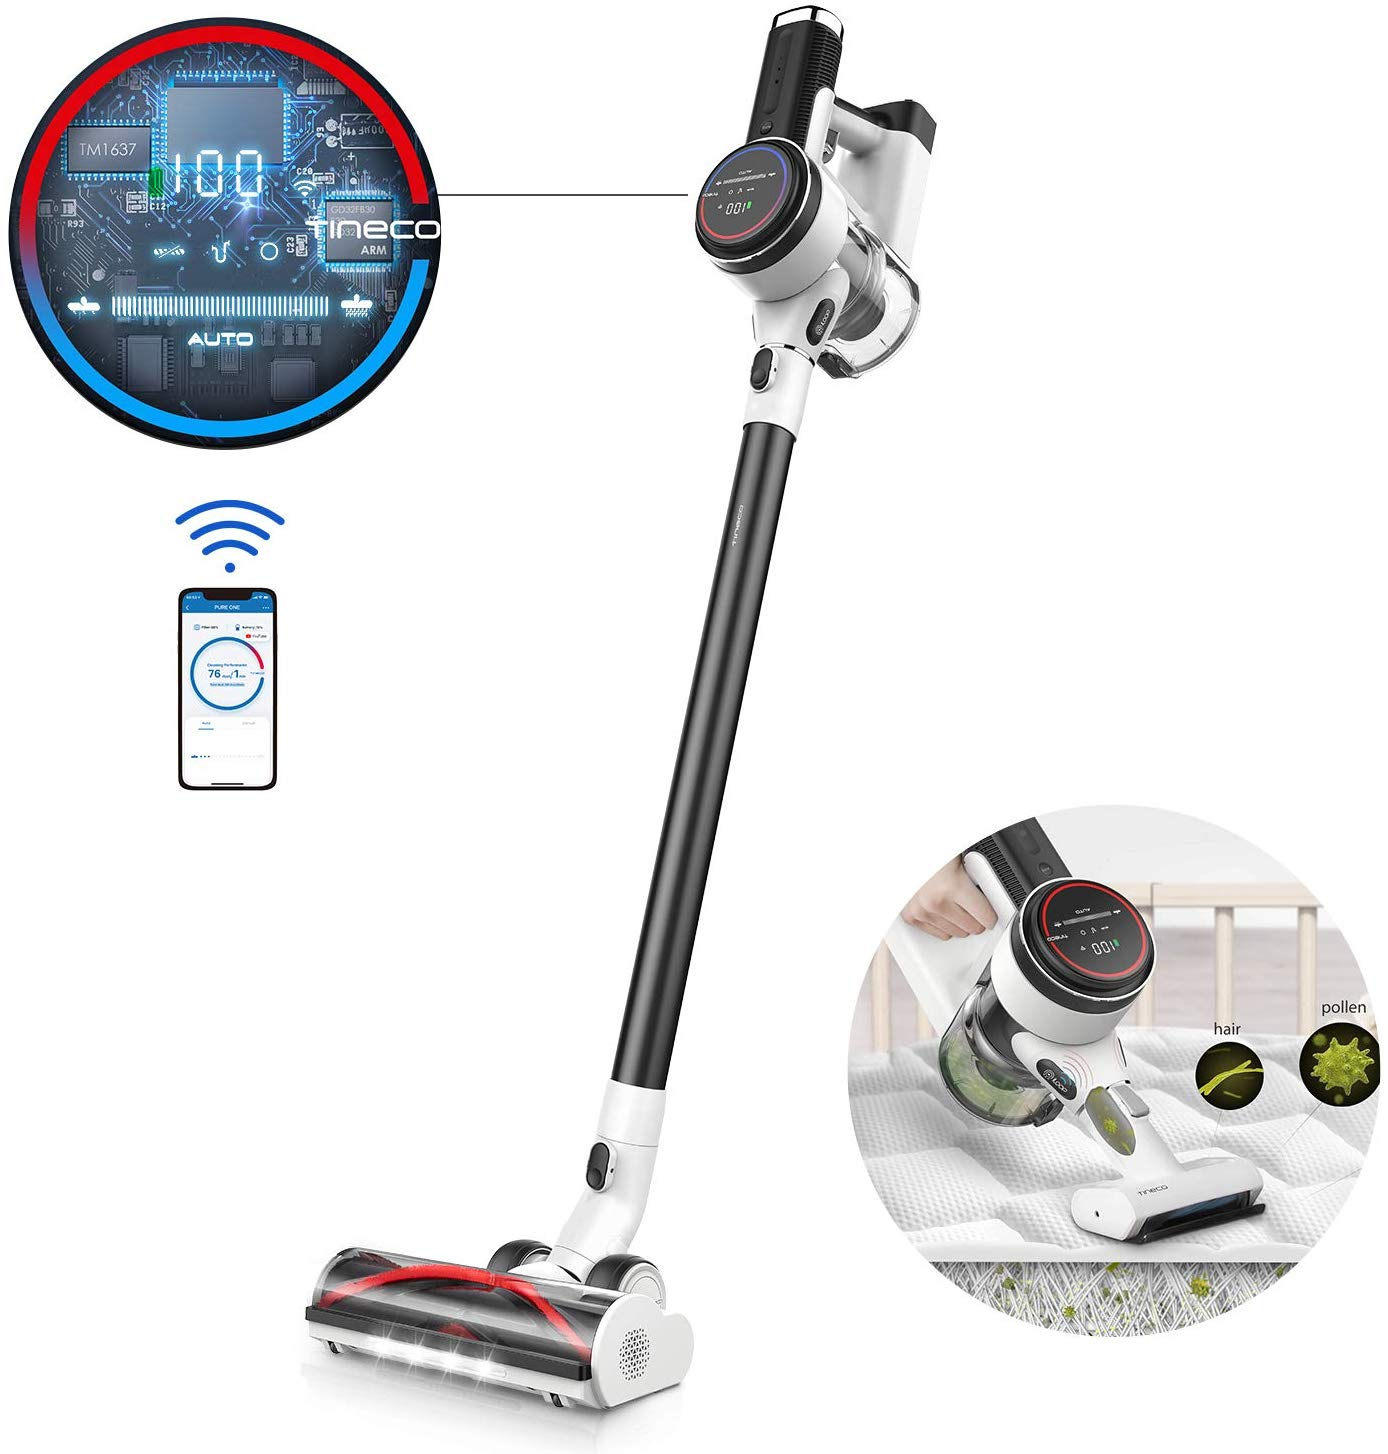 Save £70 on Tineco Cordless Vacuum Cleaner PURE ONE S12 Handheld Stick Vacuum Smart Suction